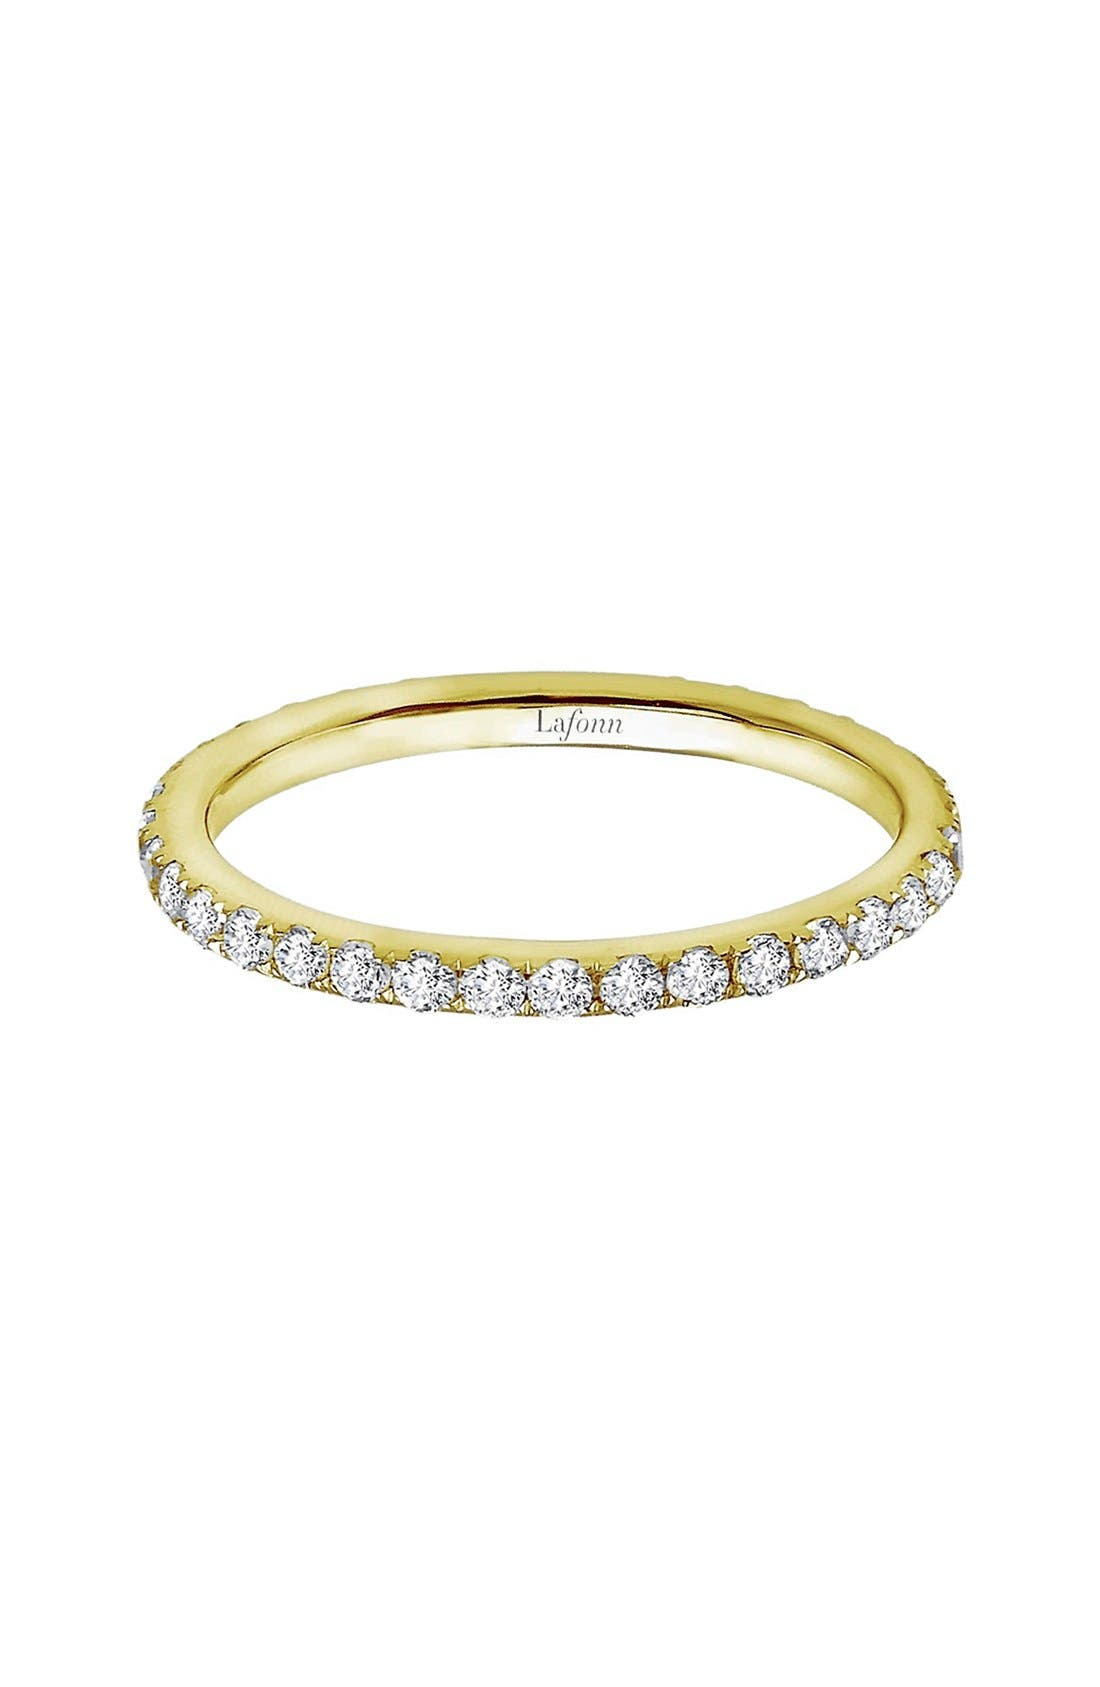 'Lassaire' Eternity Band,                         Main,                         color, 710